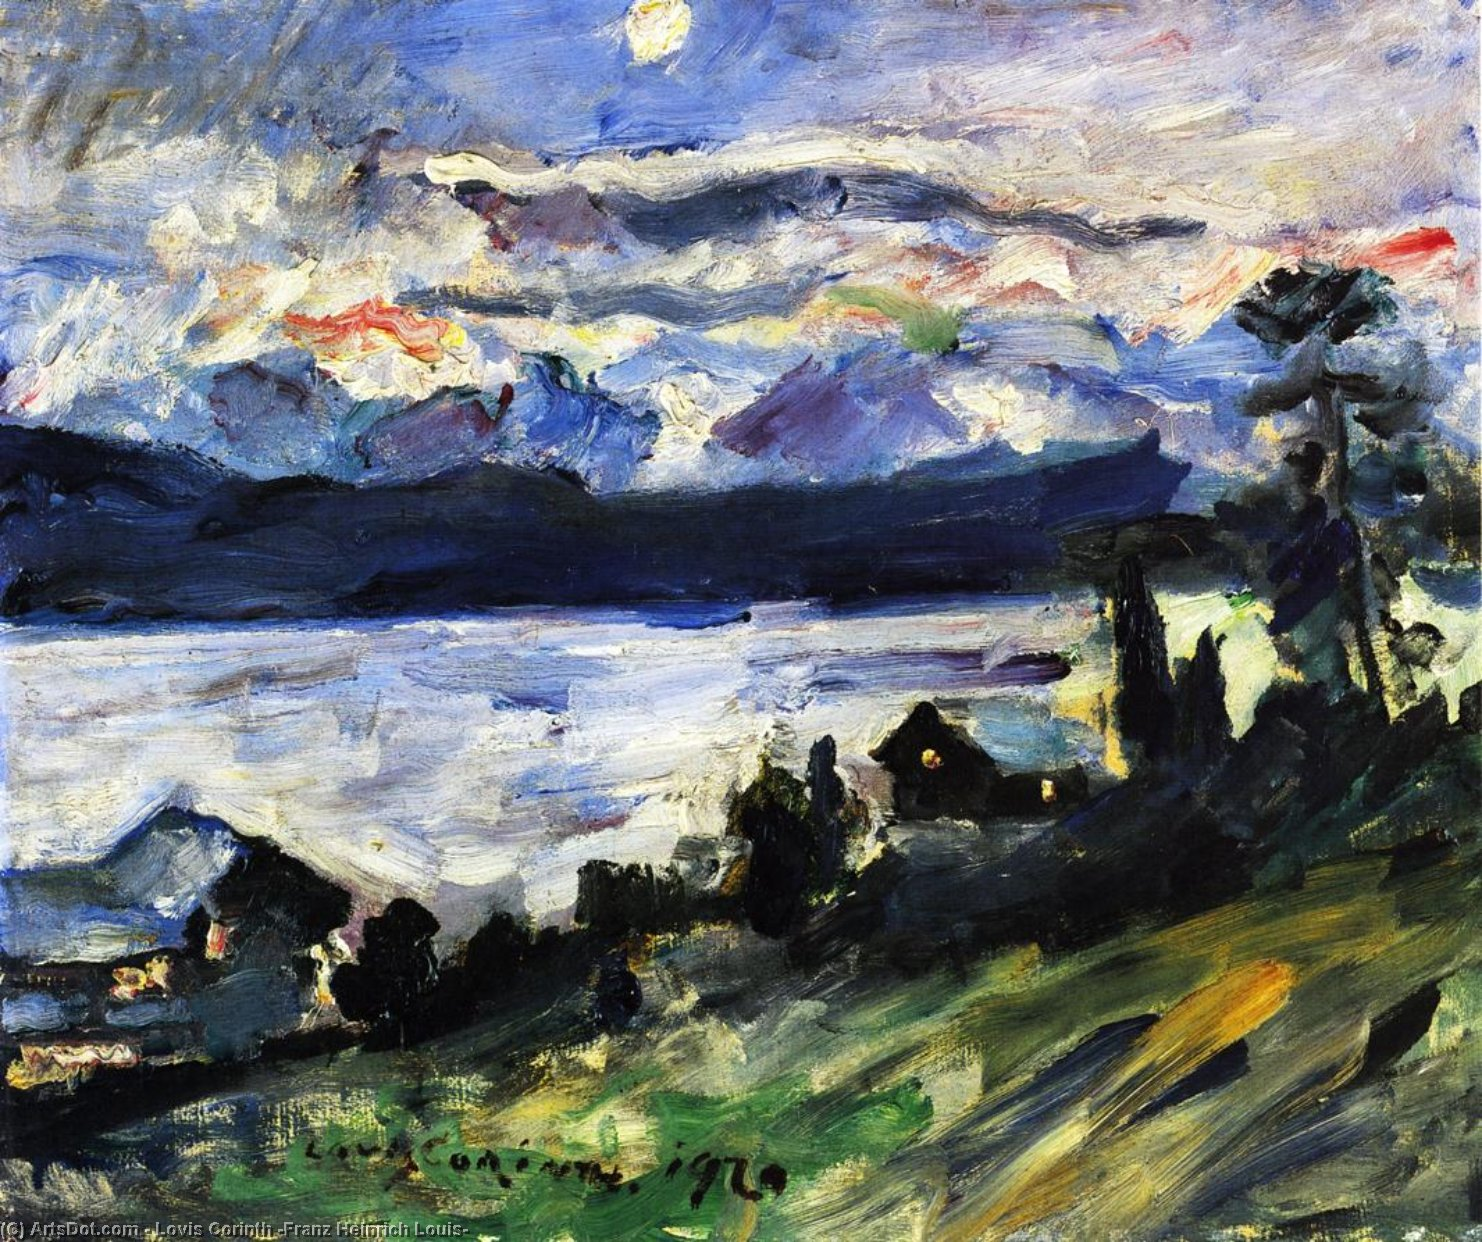 The Walchensee on Saint John's Eve, Painting by Lovis Corinth (Franz Heinrich Louis) (1858-1925, Netherlands)